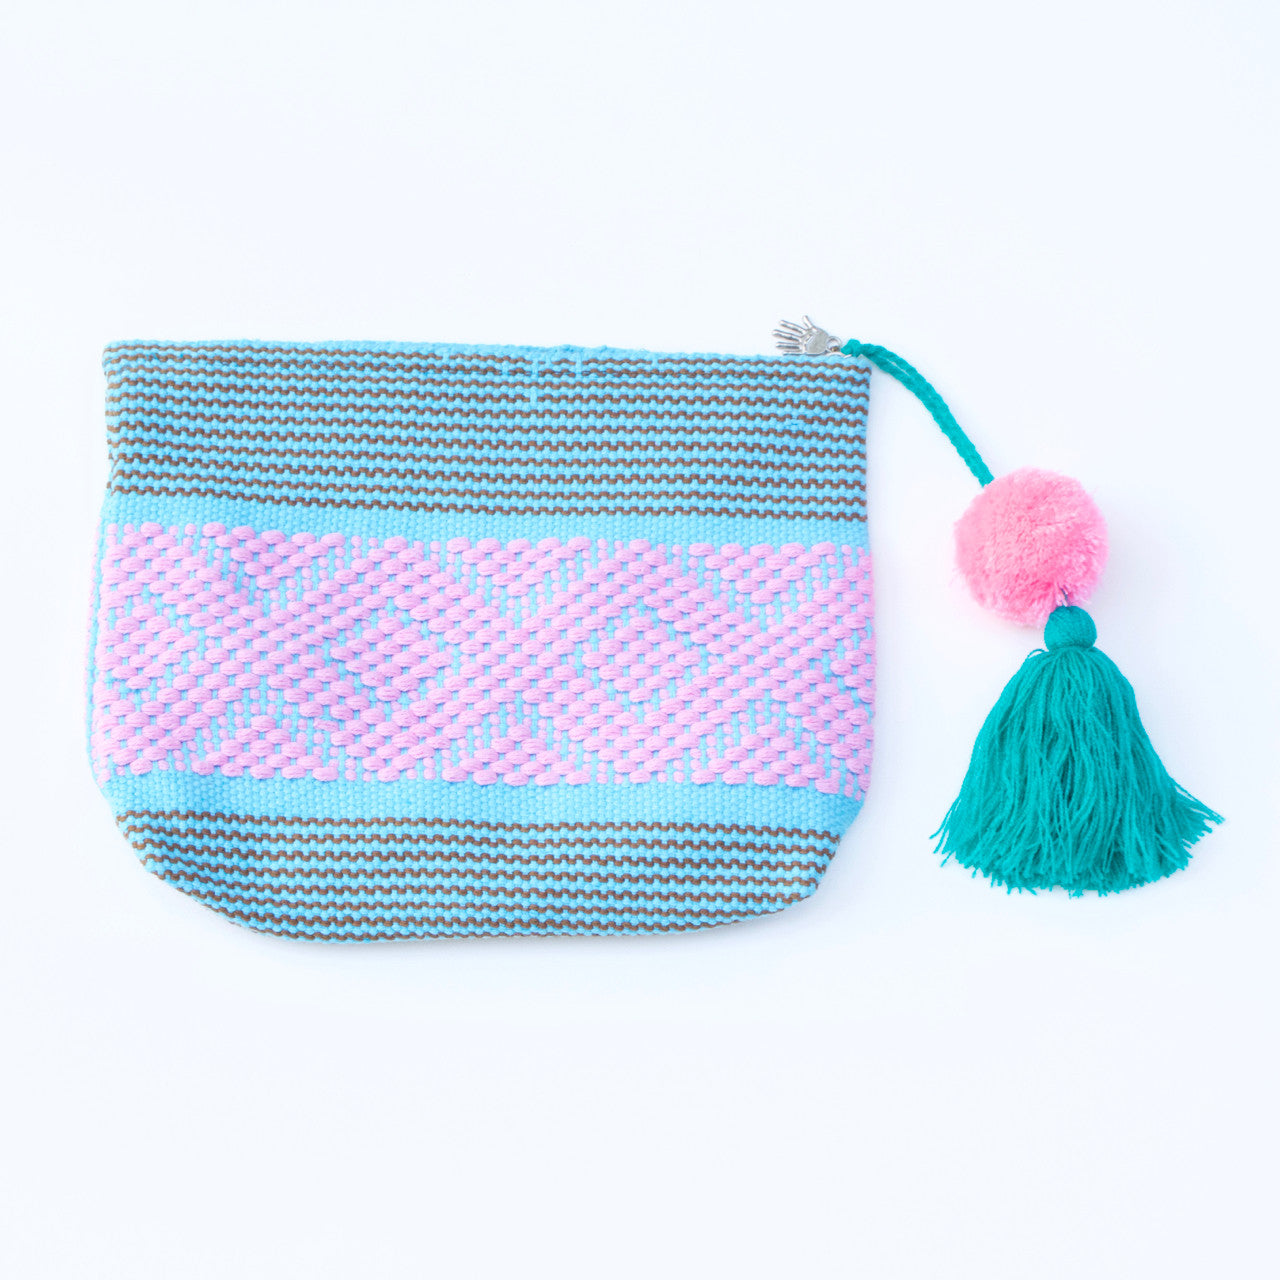 Jalieza Diamond Clutch 34  Clutch Sky Blue - Cielo Collective handmade Mexico Guatemala